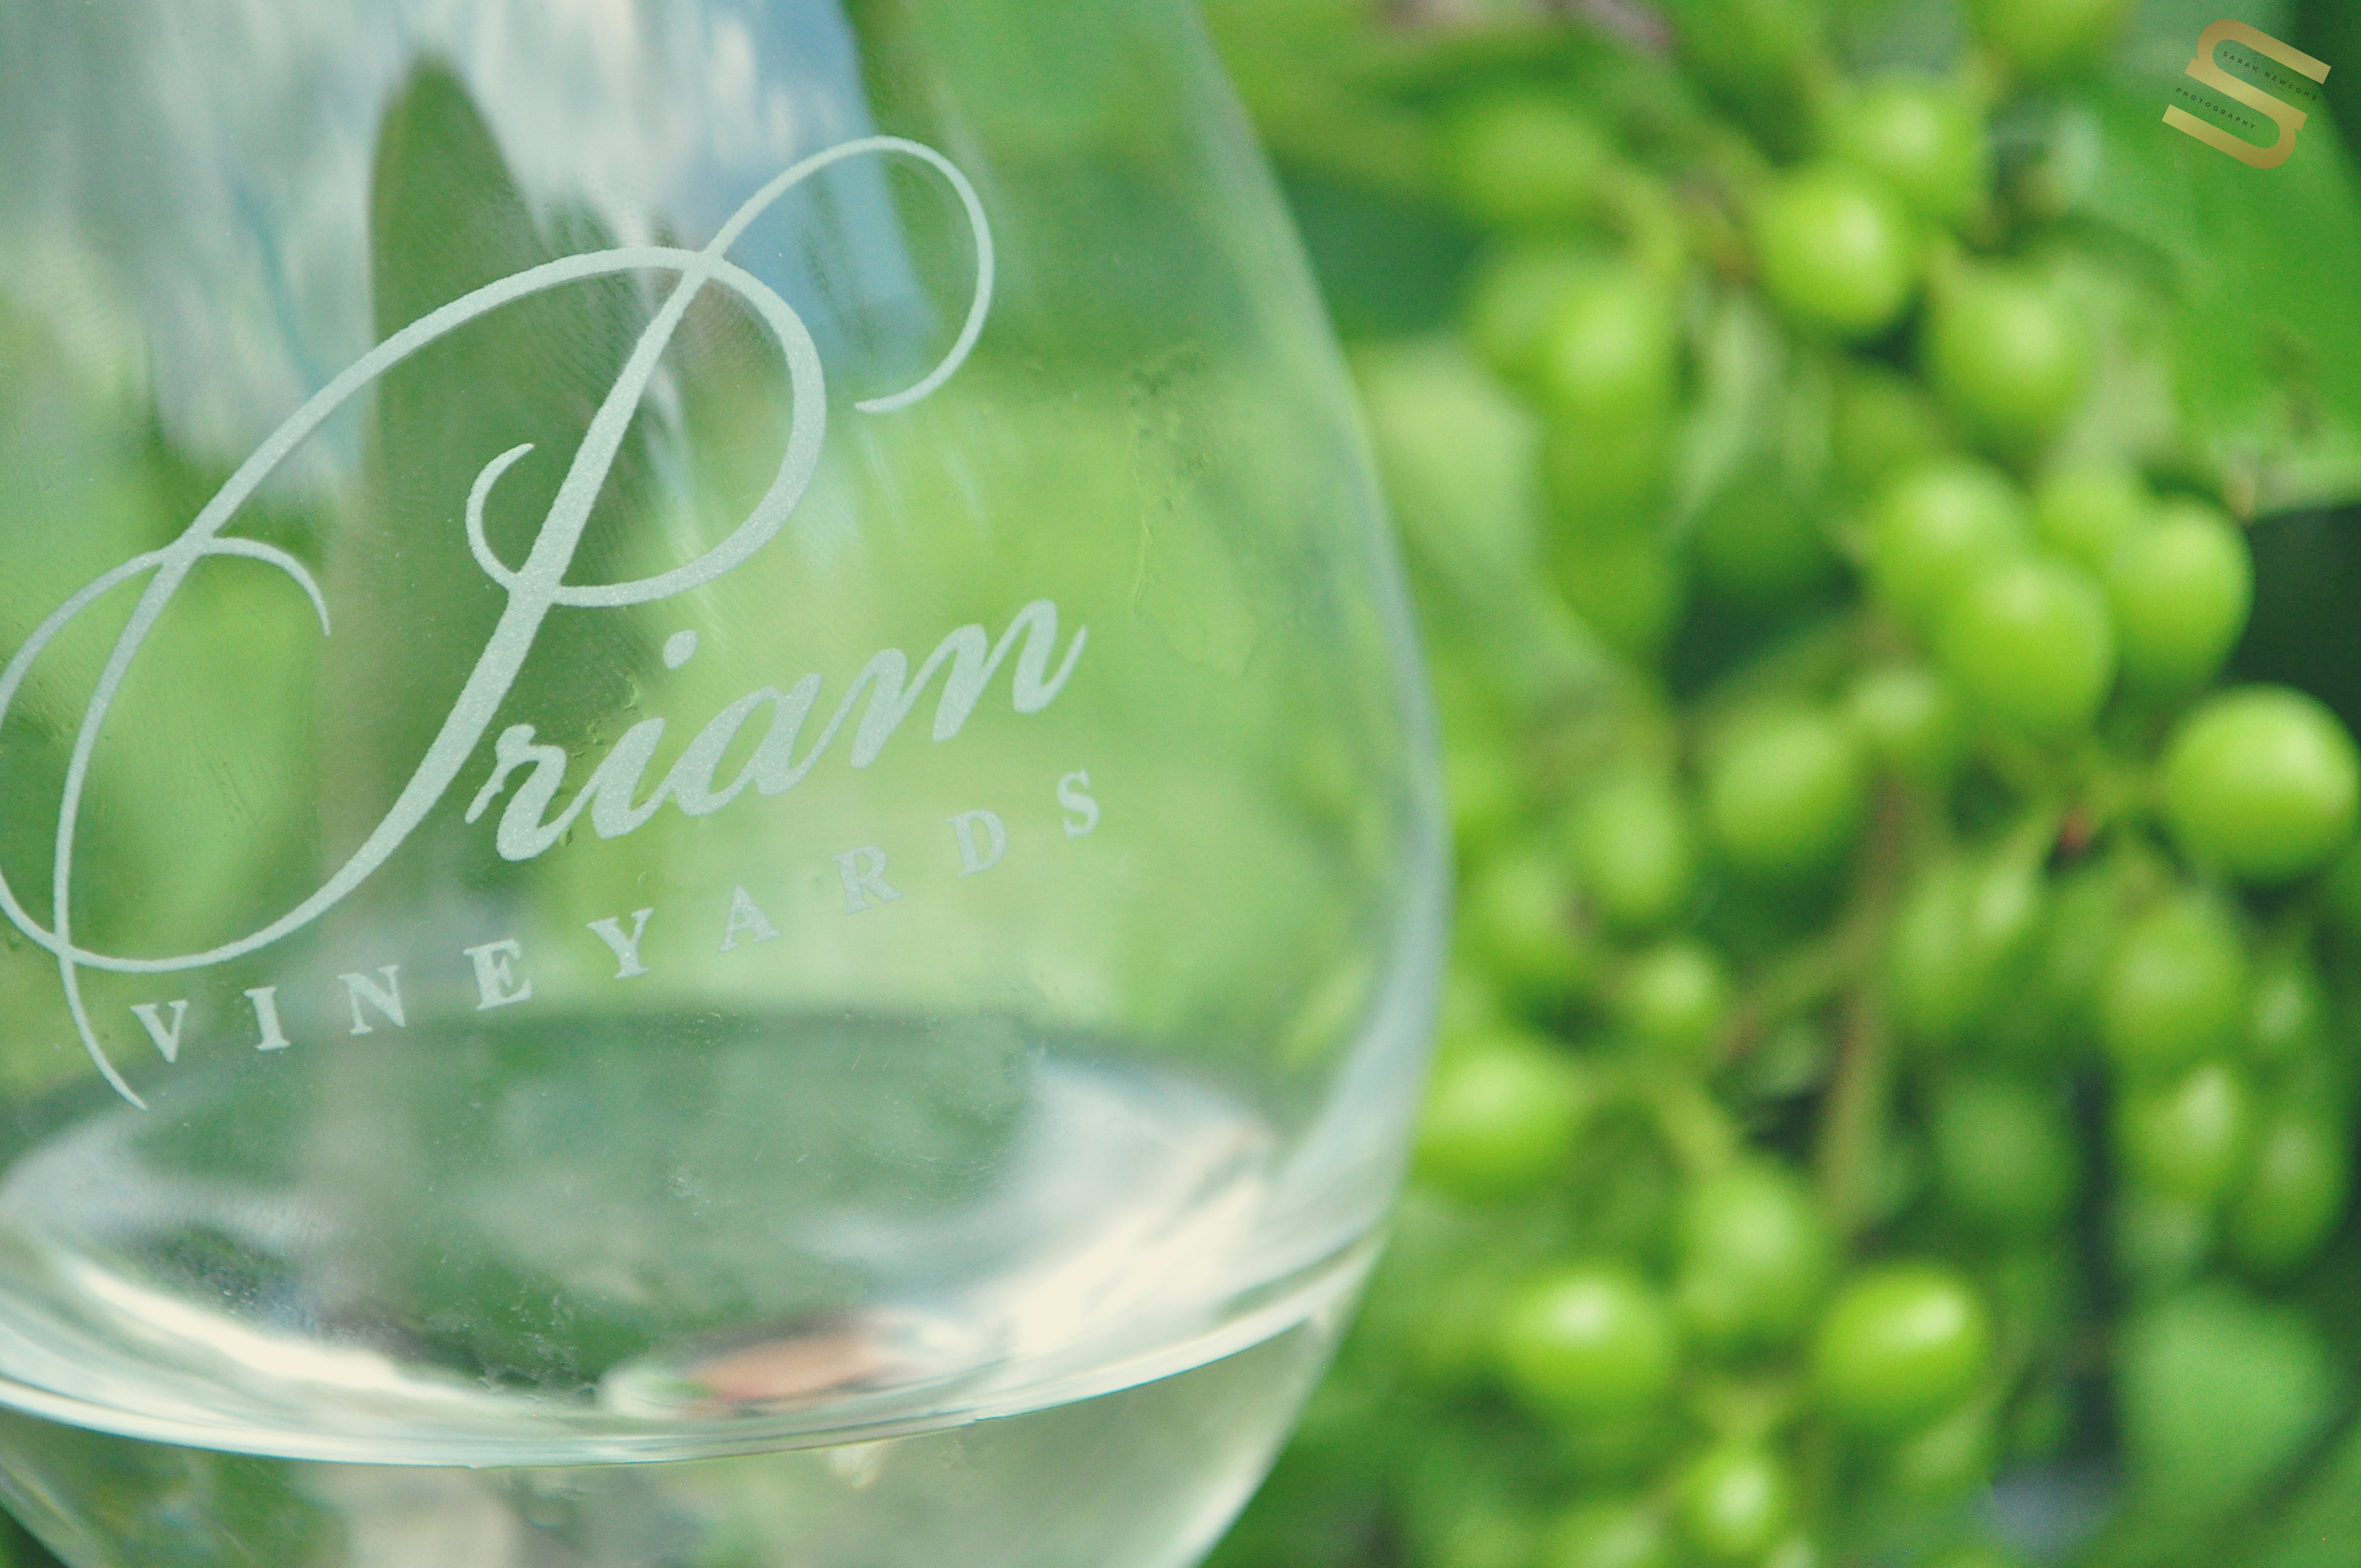 Commercial- Priam Vineyards